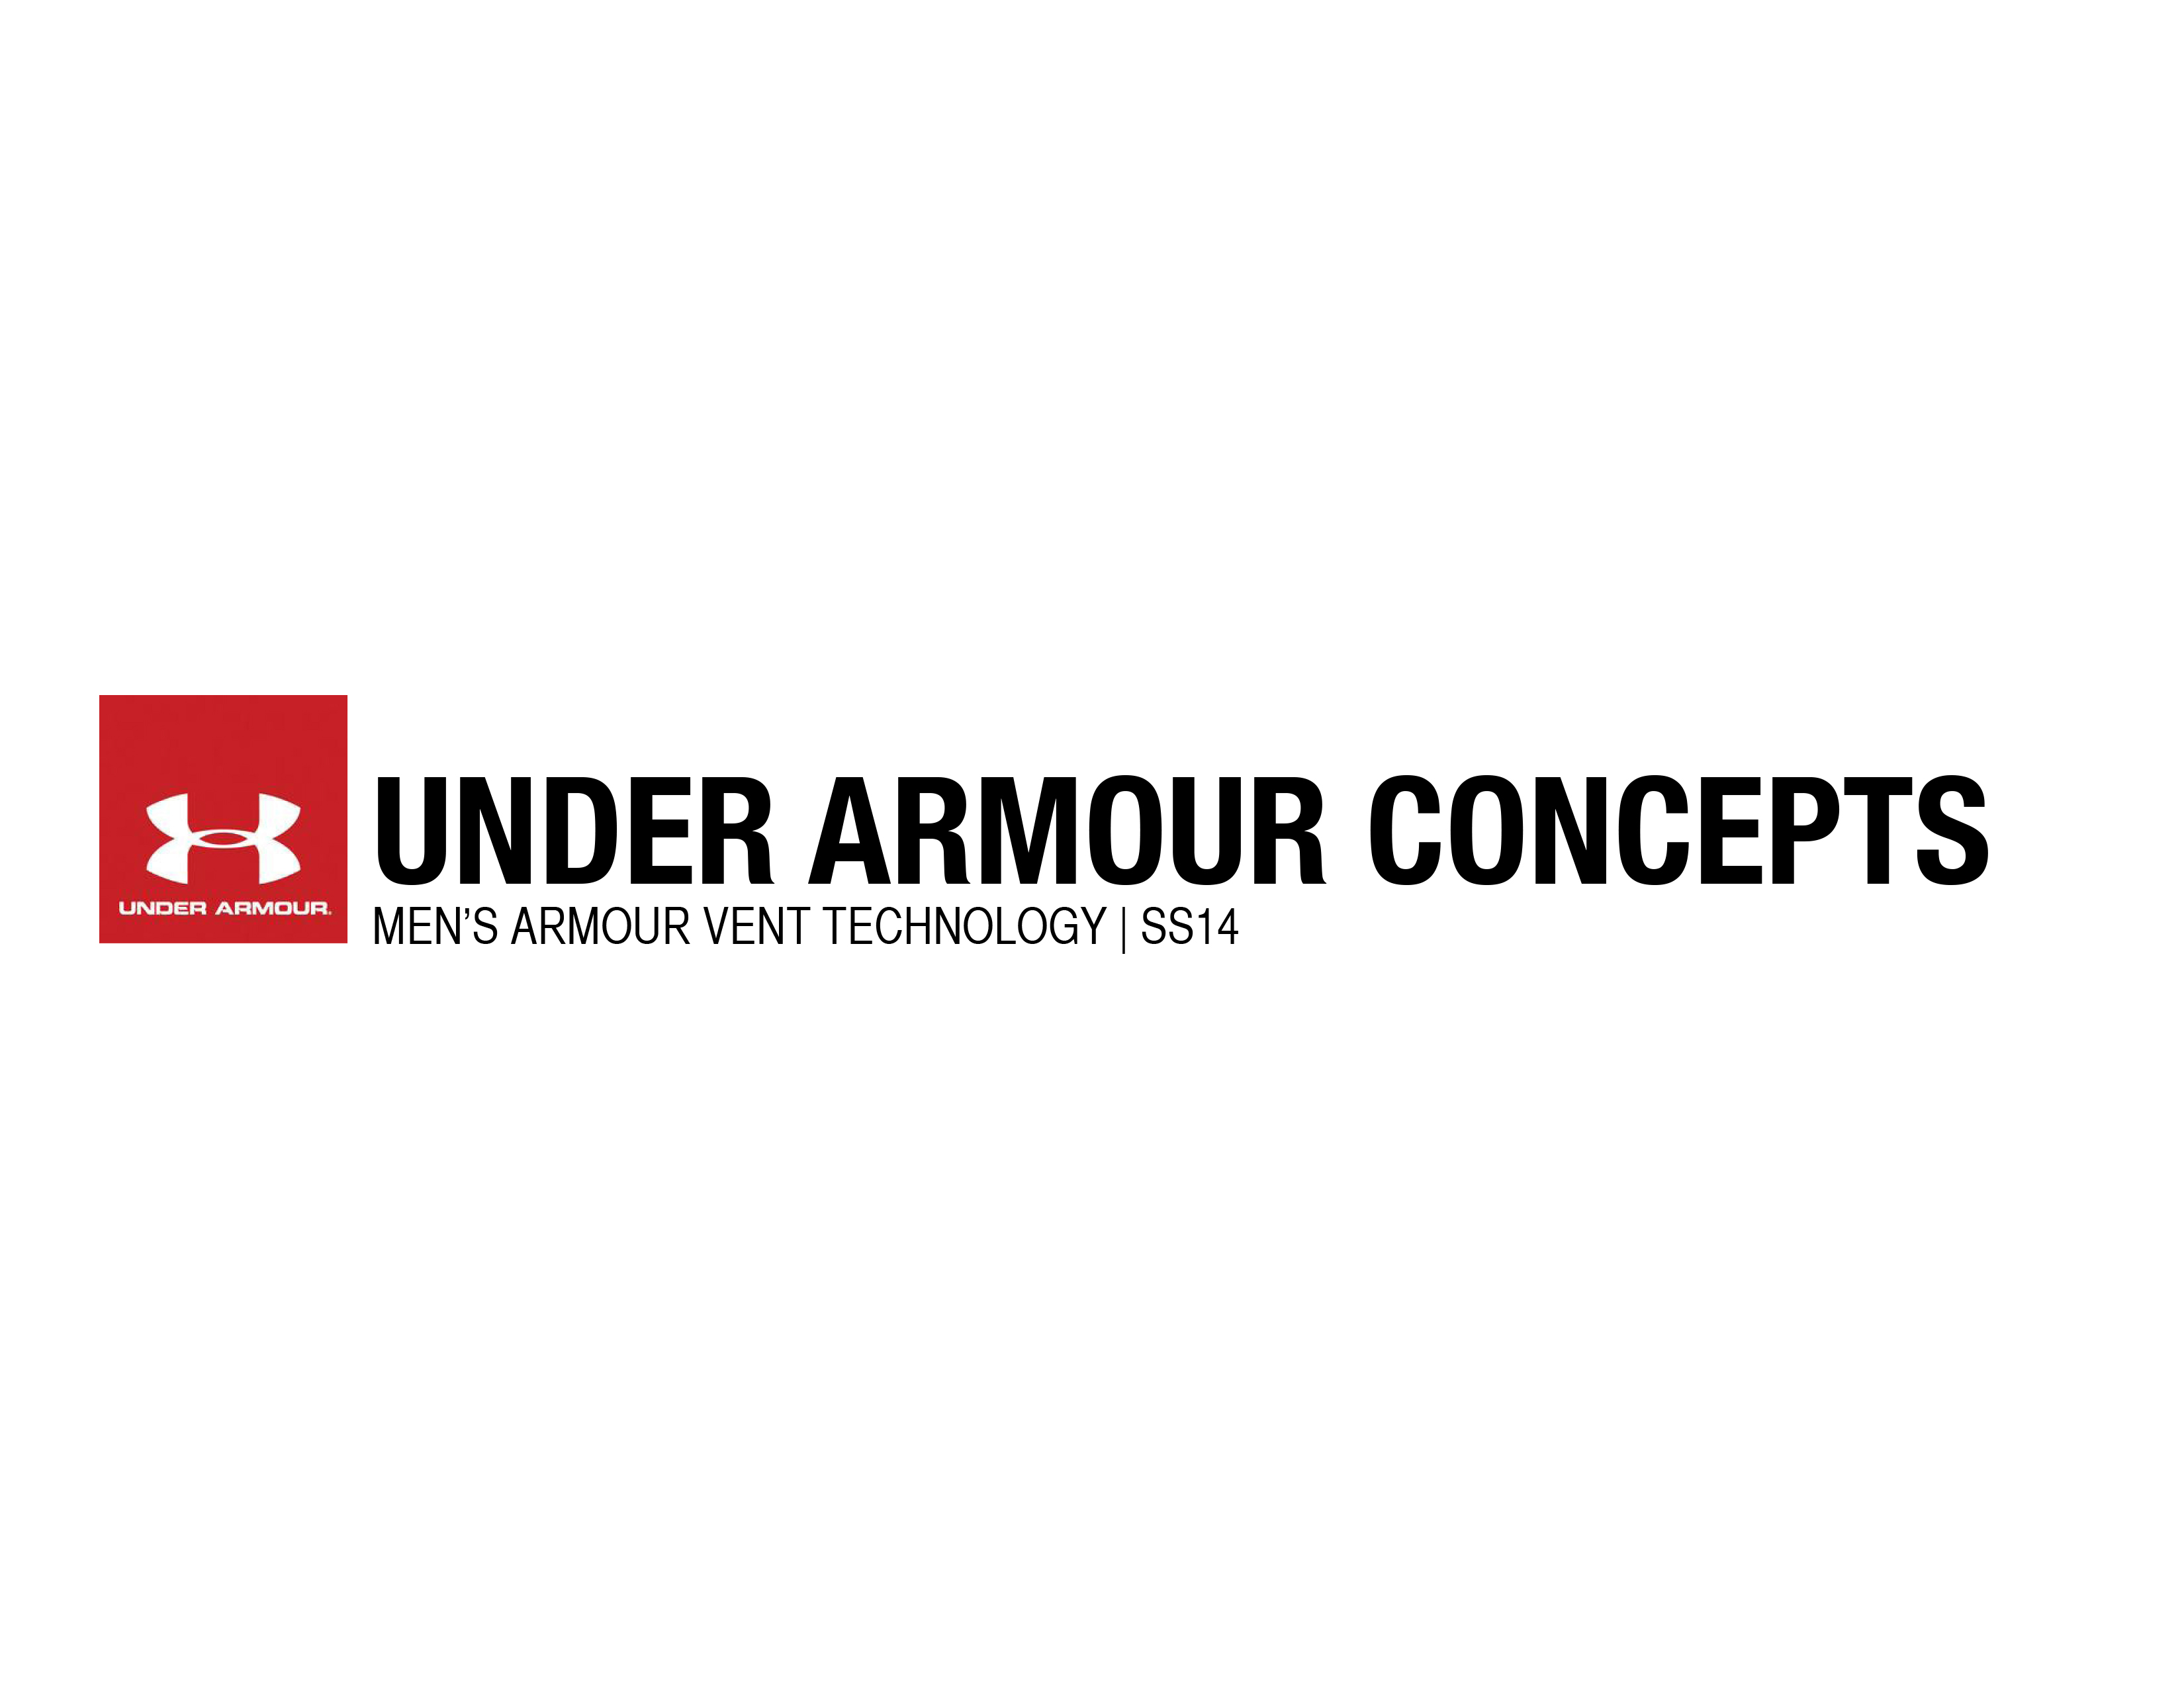 Under Armour Concepts